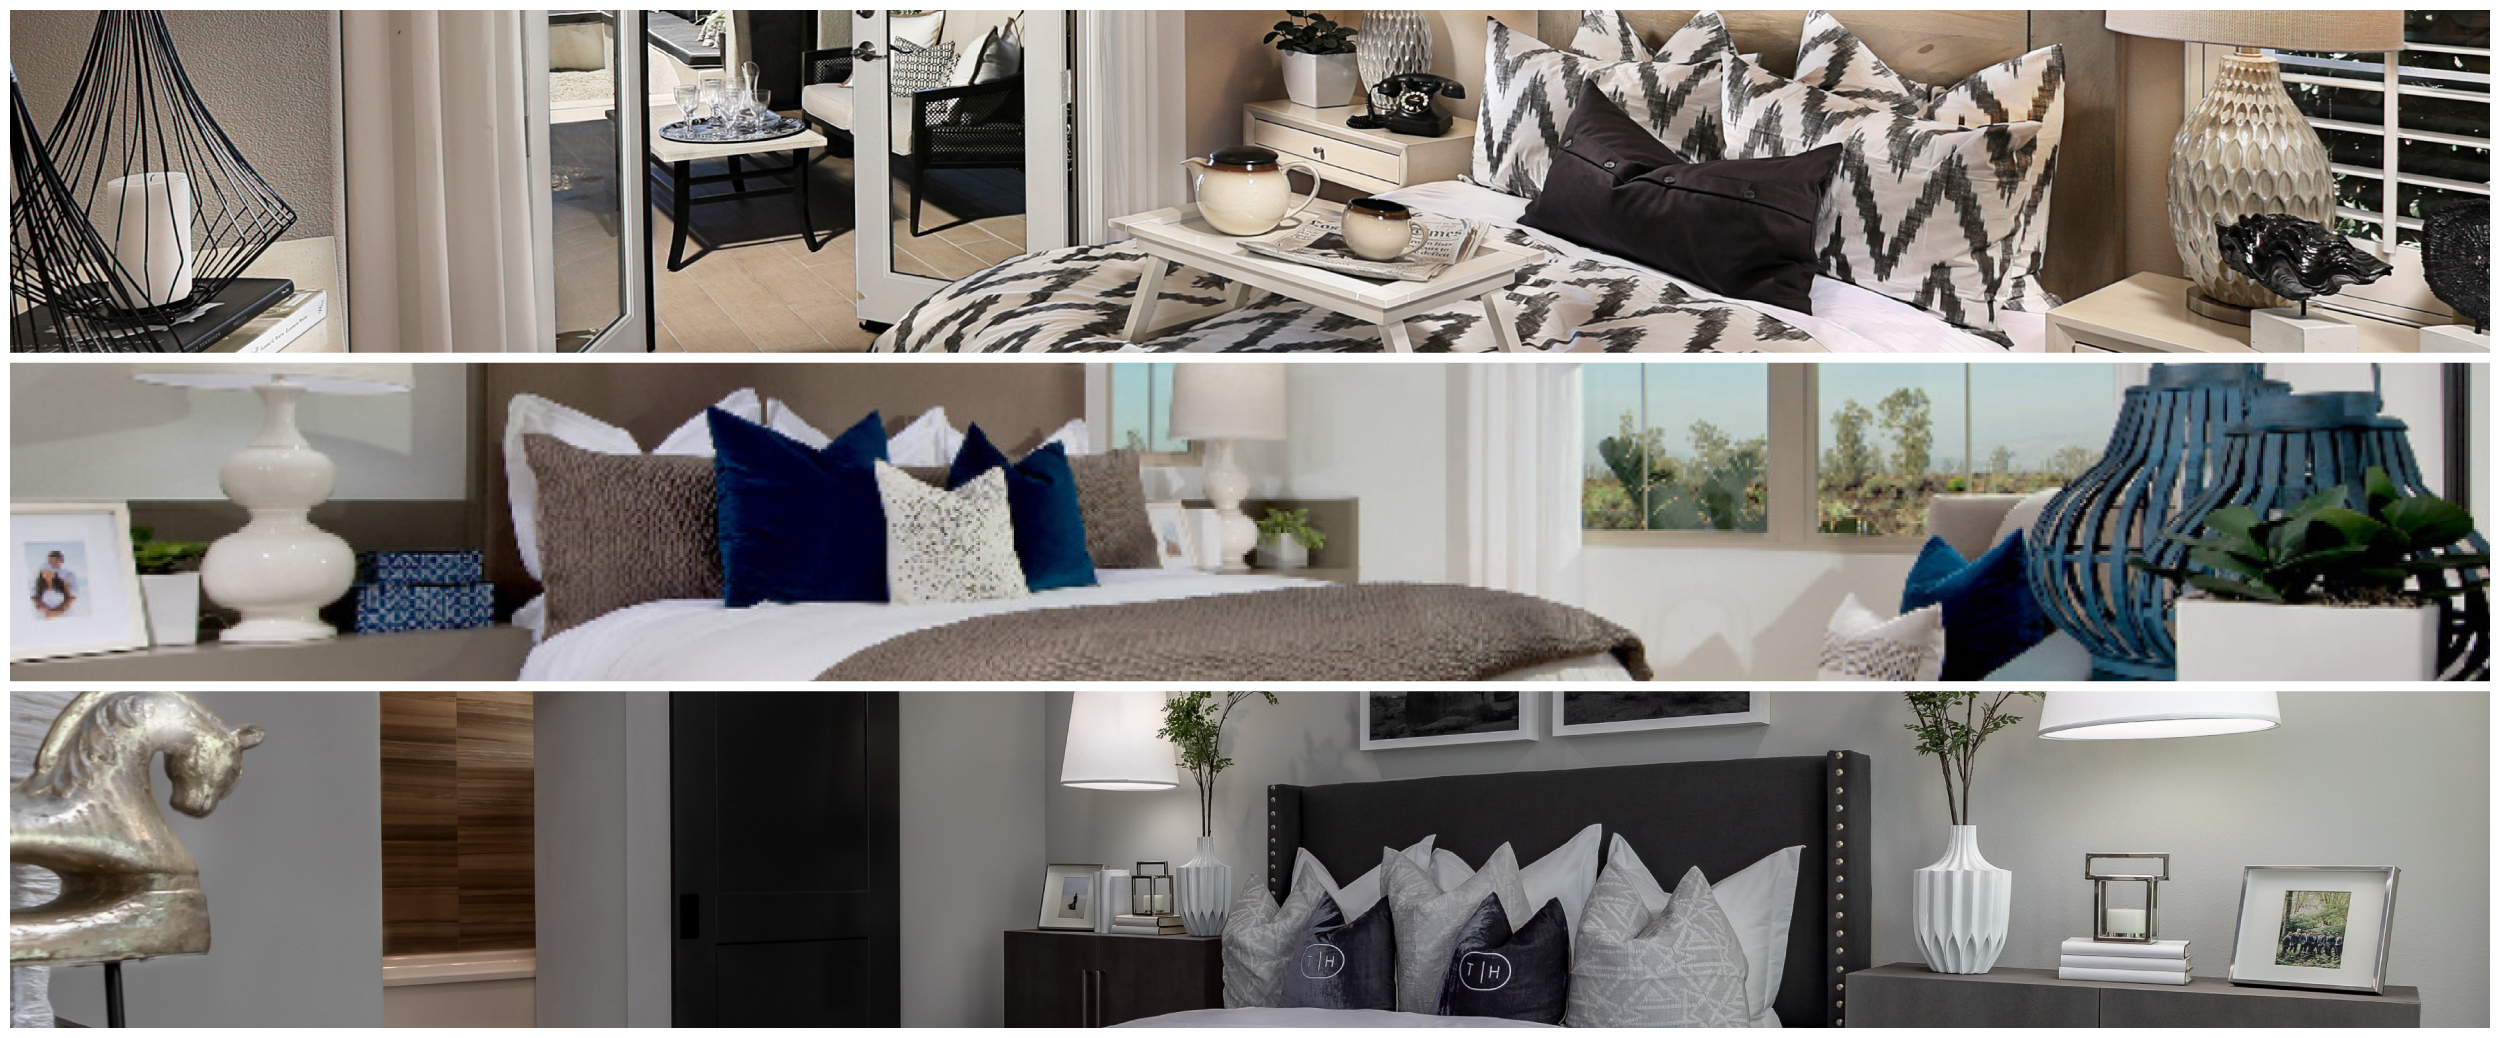 RoomsInteriors_About_2018.jpg